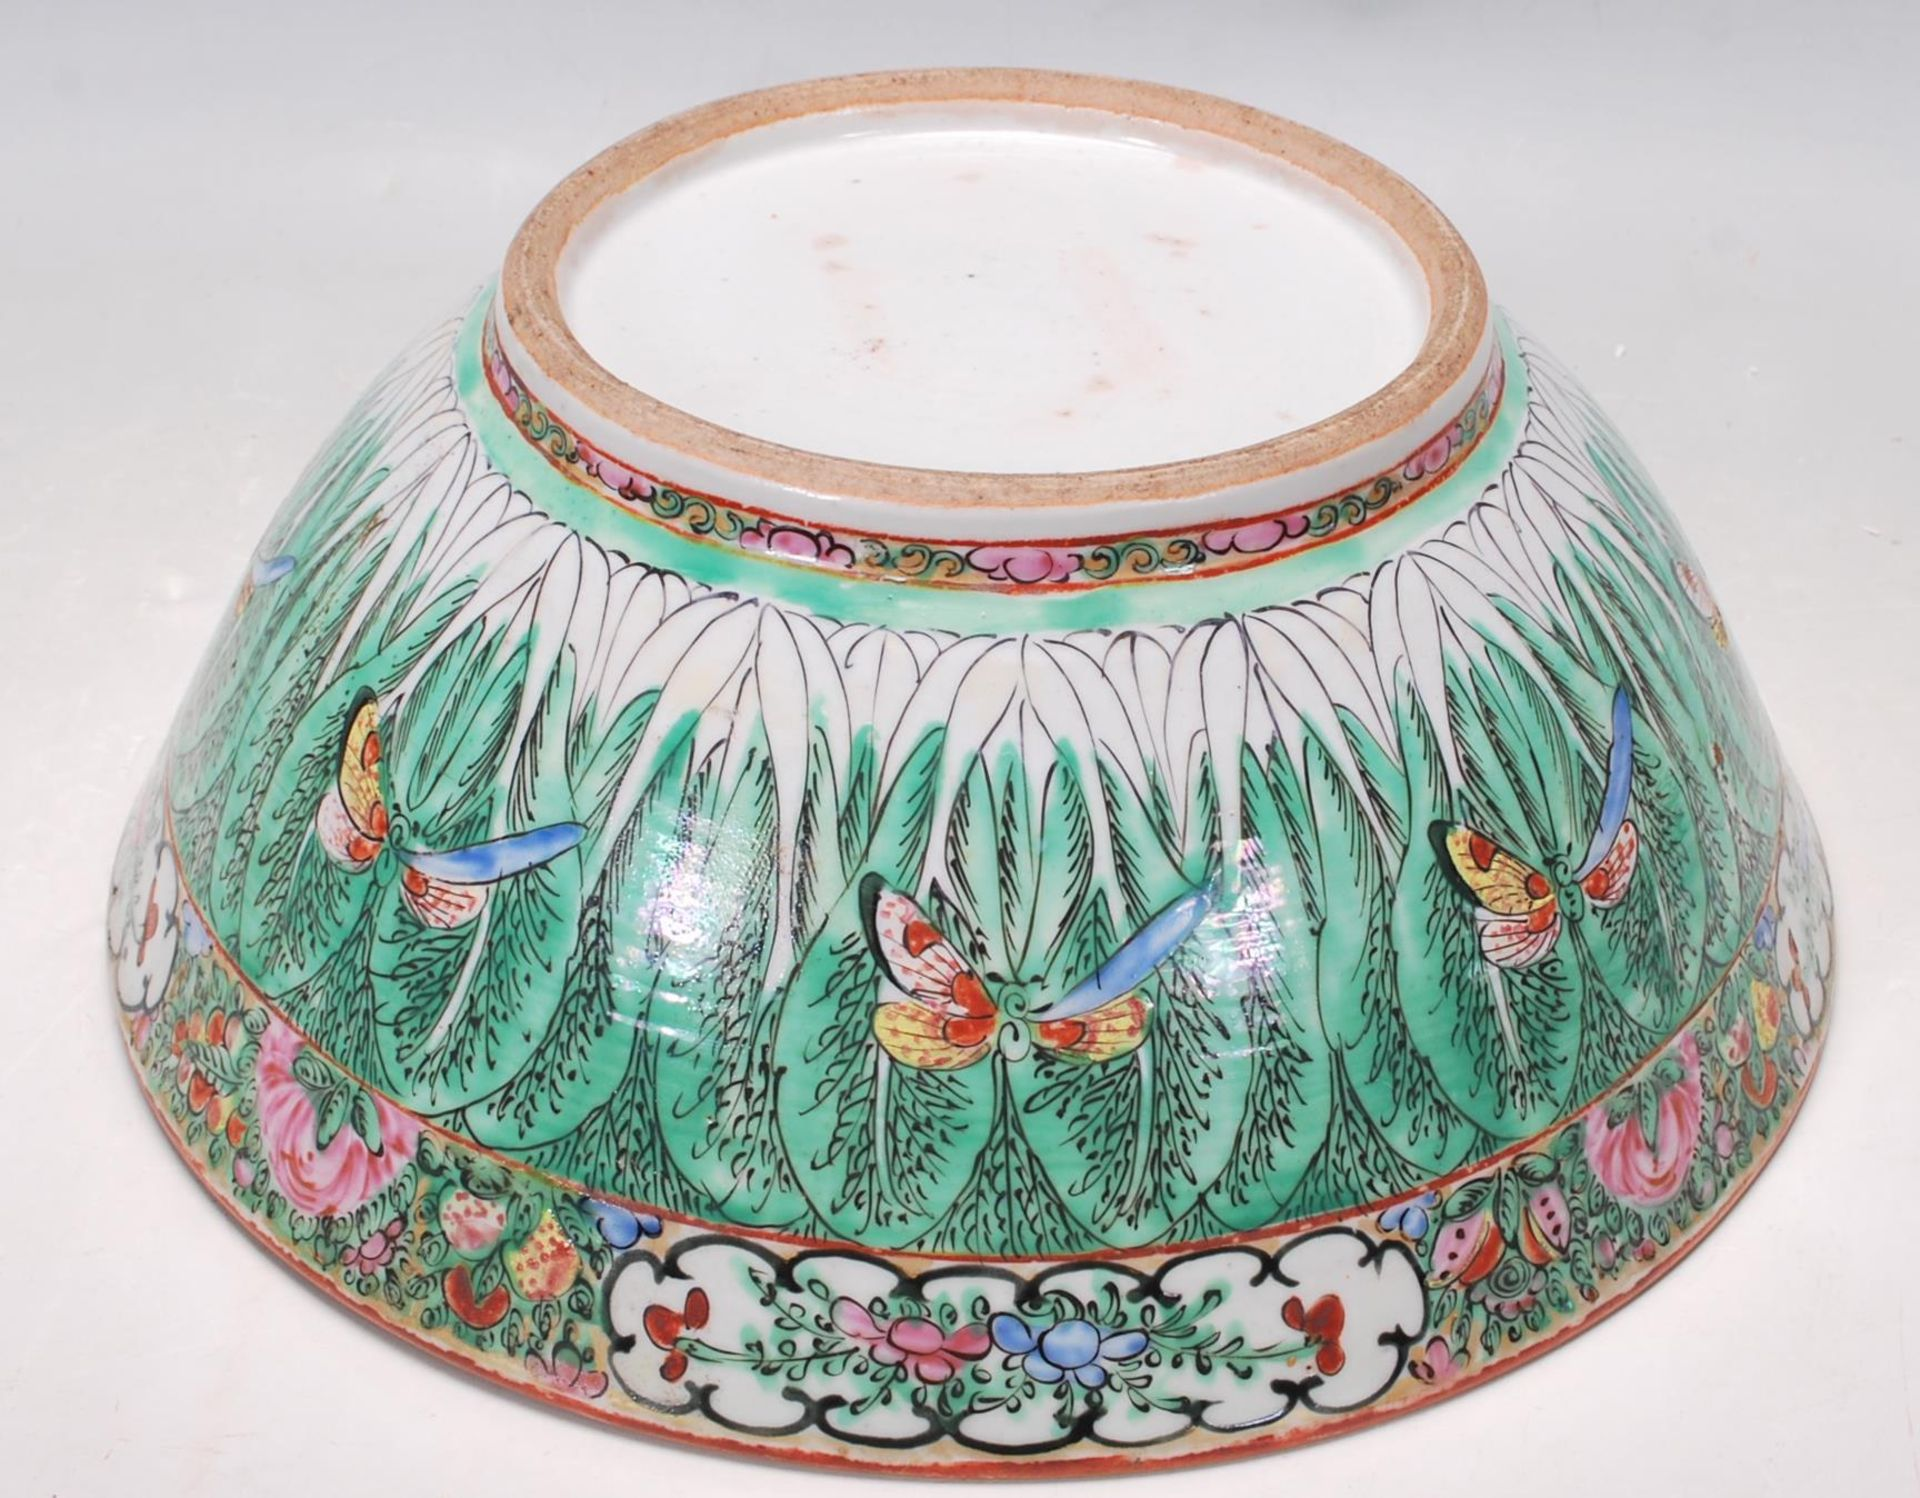 19TH CENTURY CHINESE ORIENTAL CENTRE PIECE BOWL - Image 7 of 11